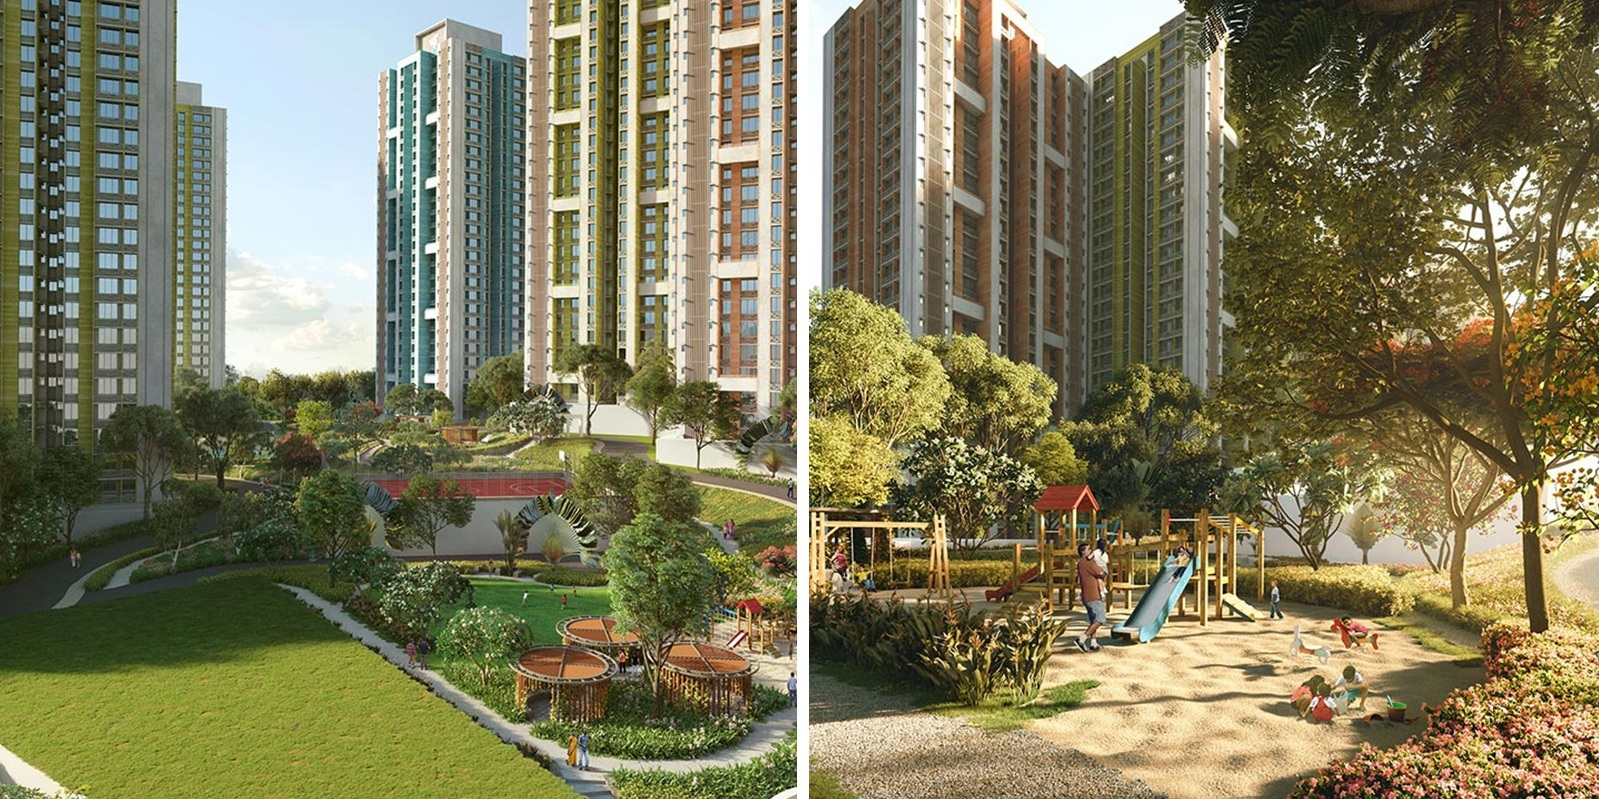 wadhwa wise city south block phase 1 b1 wing a2 amenities features8